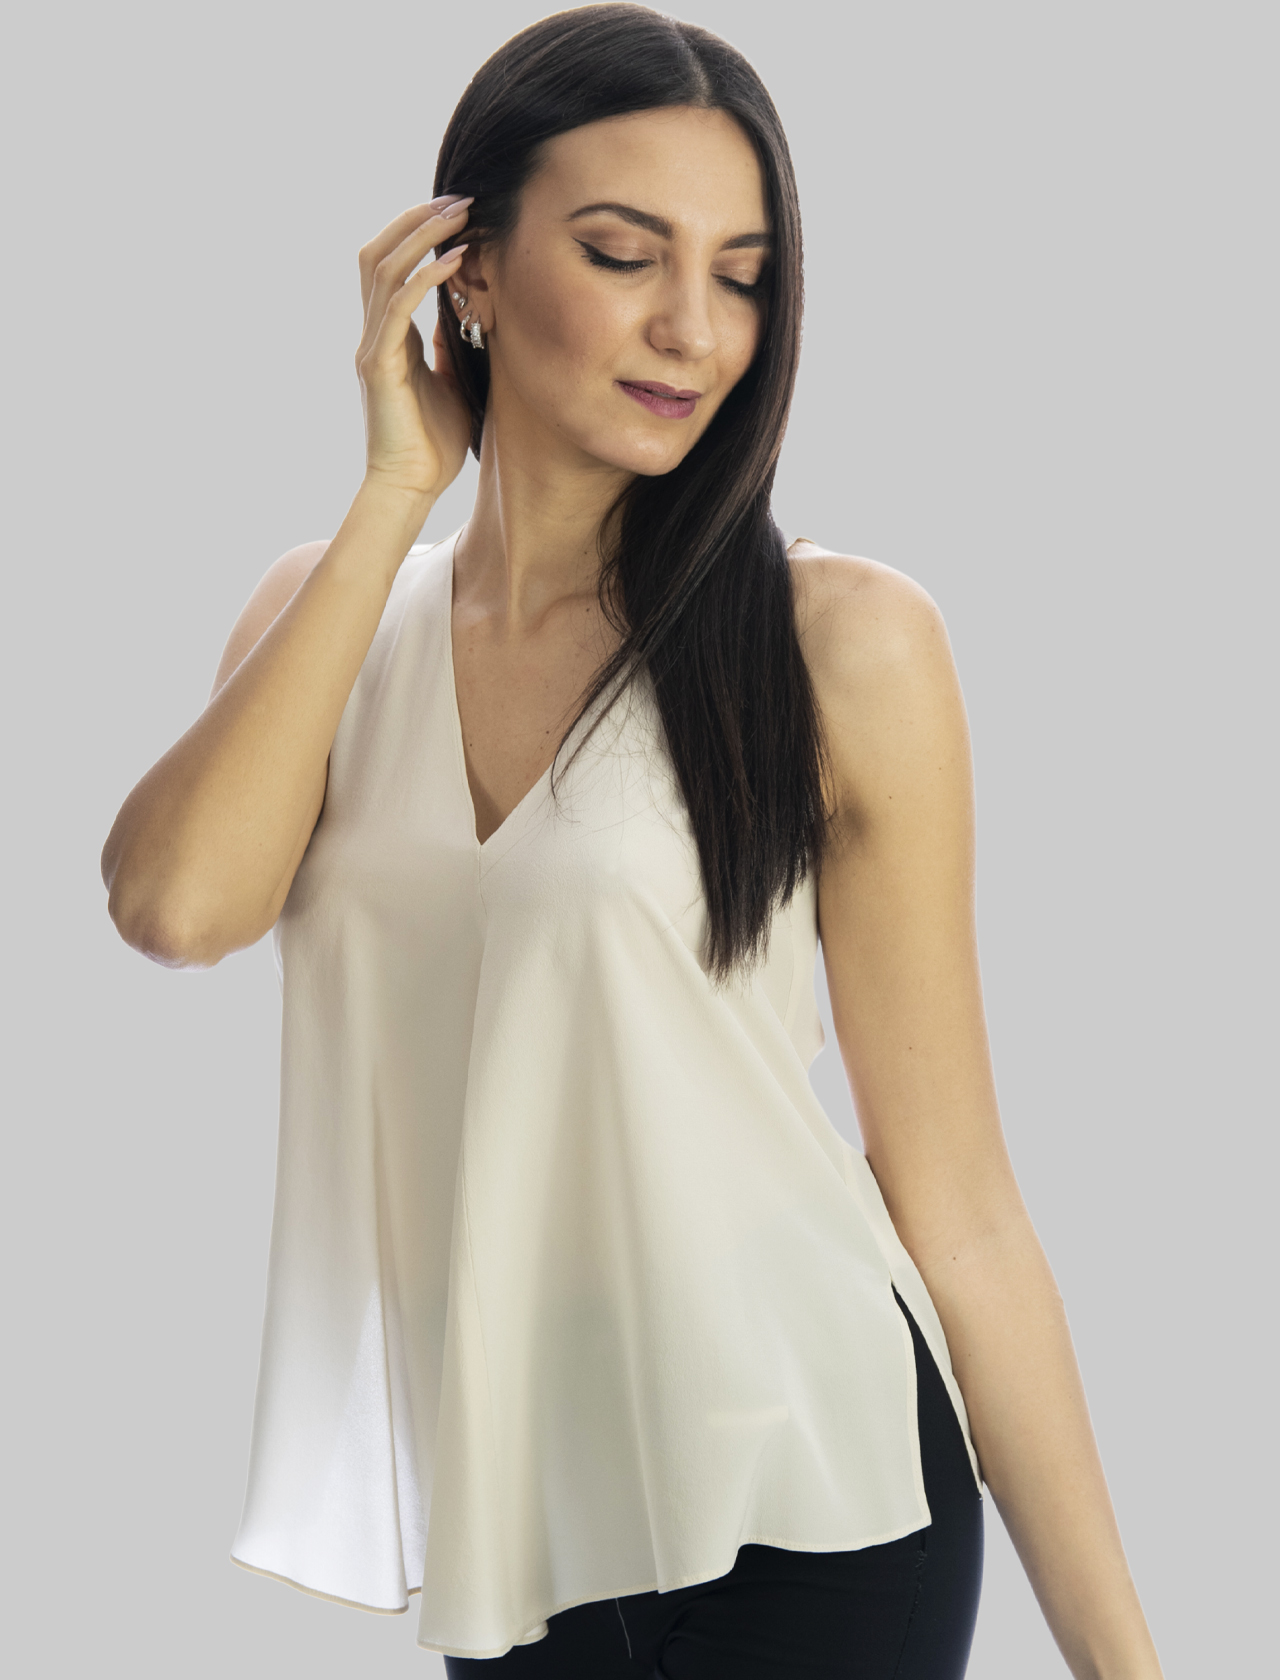 Women's Clothing Sand Silk Crepe de Chine Top with V-Neck Maliparmi | Shirts and tops | JP53183004411001